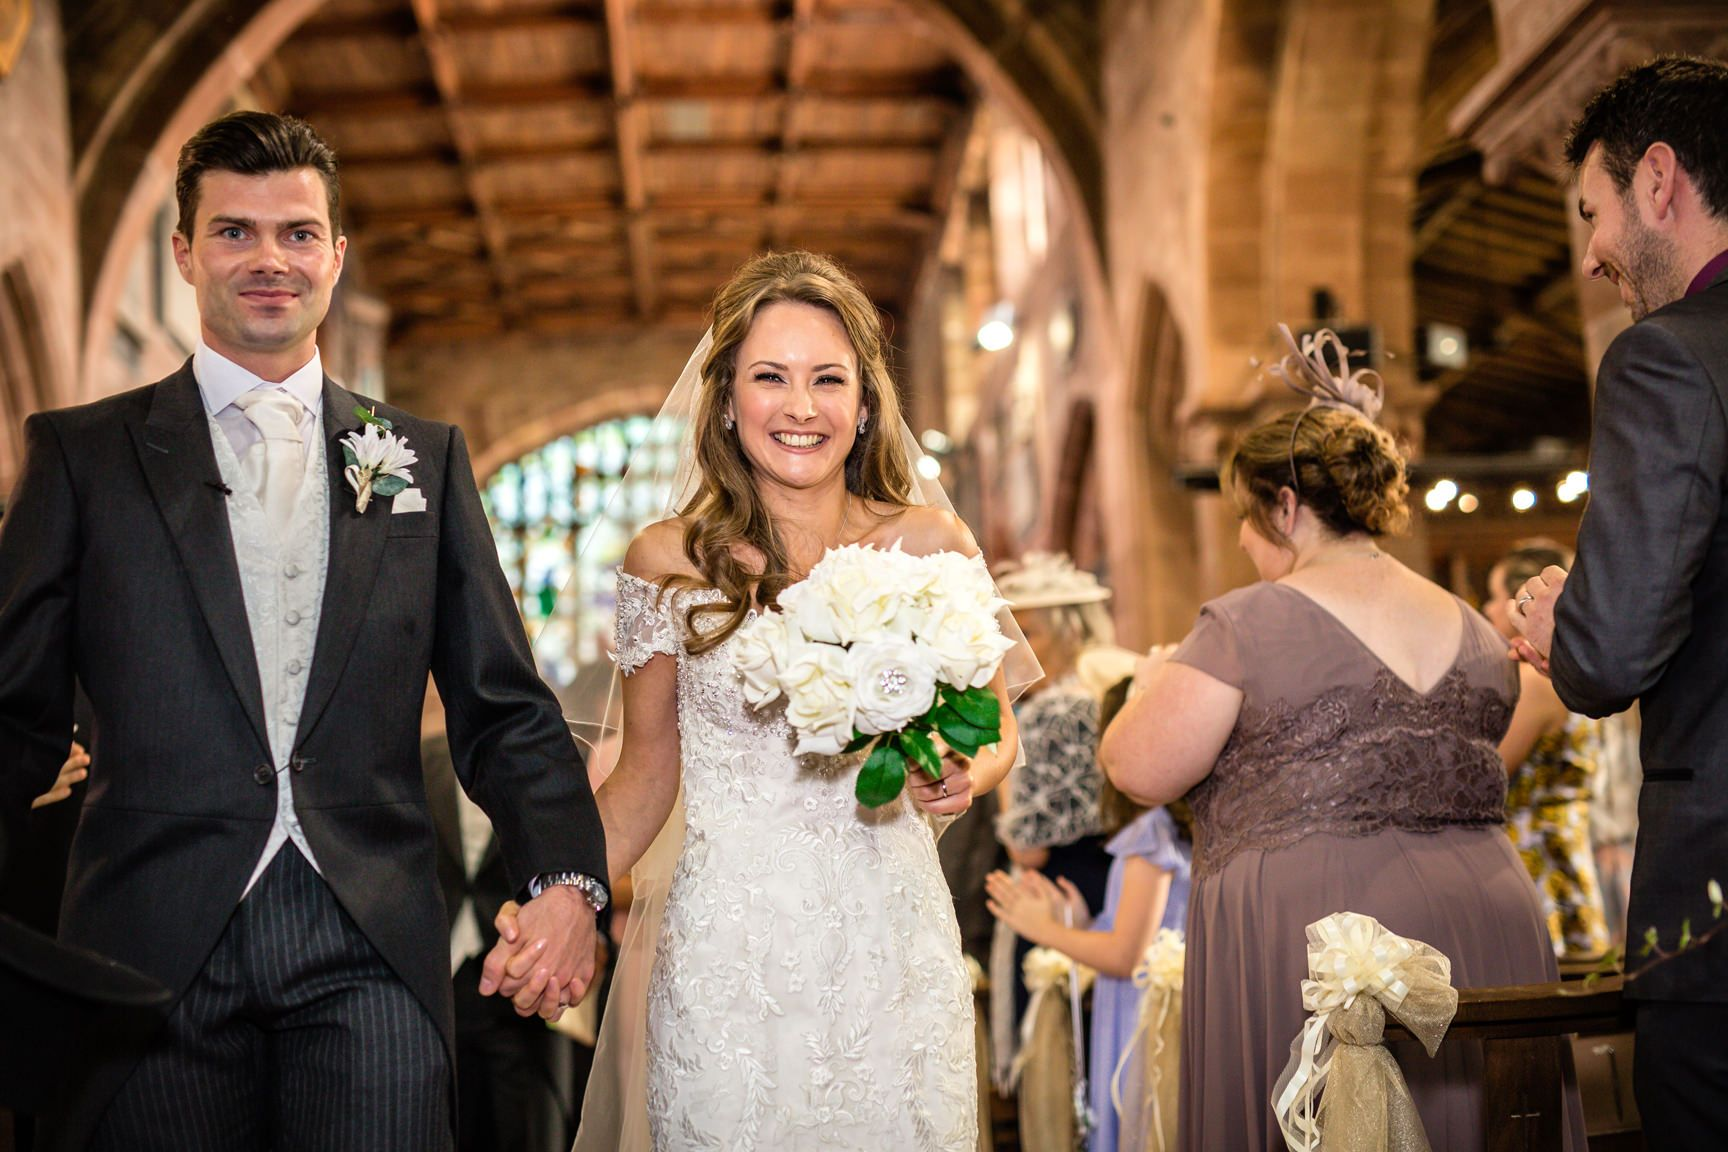 Groom with his bride holding a bouquet of flowers walking up the aisle on their Willington Hall wedding day